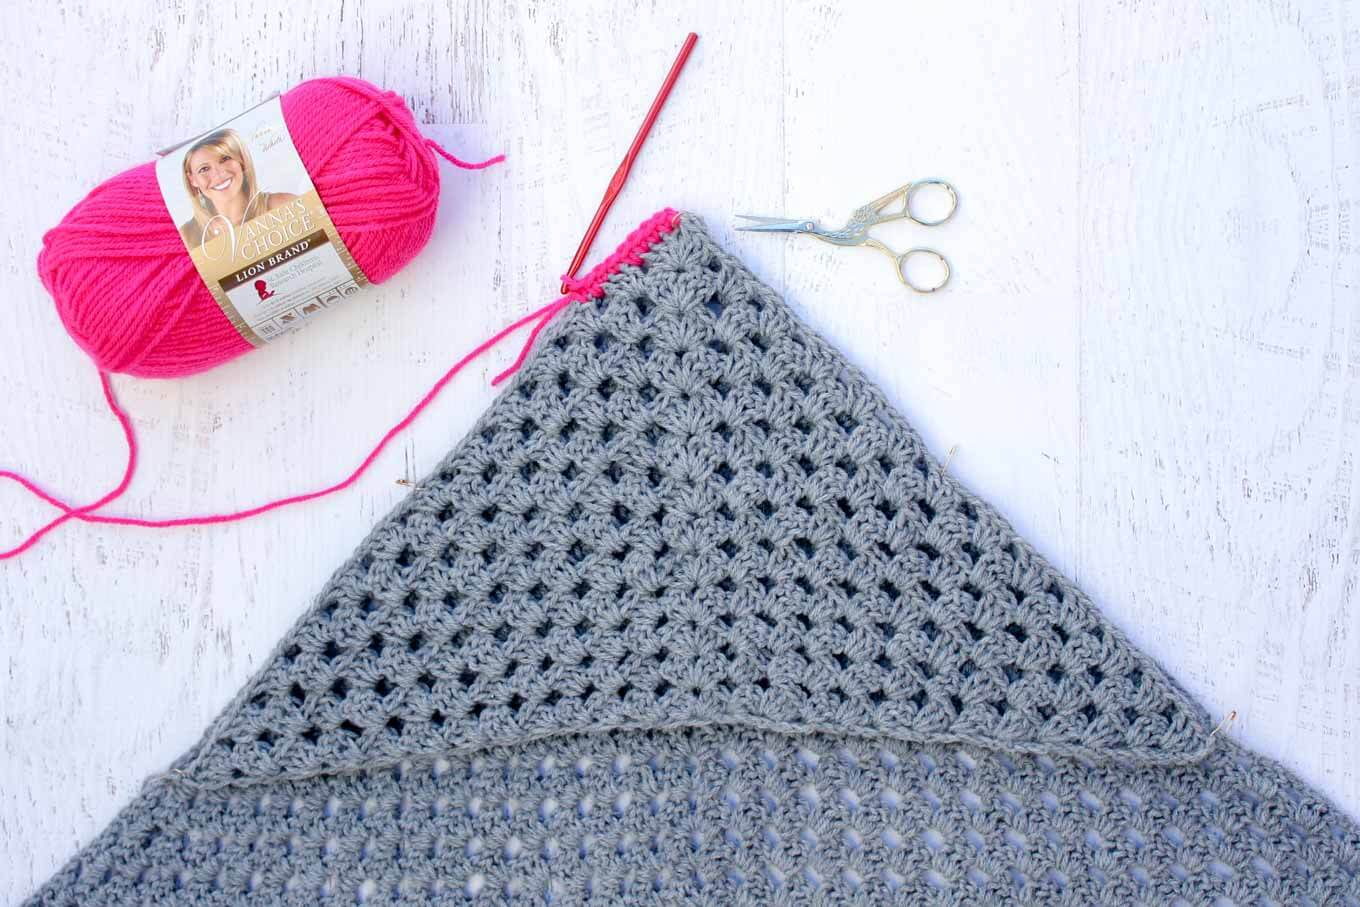 Baby Car Seat Blanket Free Pattern Modern Crochet Hooded Baby Blanket Free Pattern For Charity